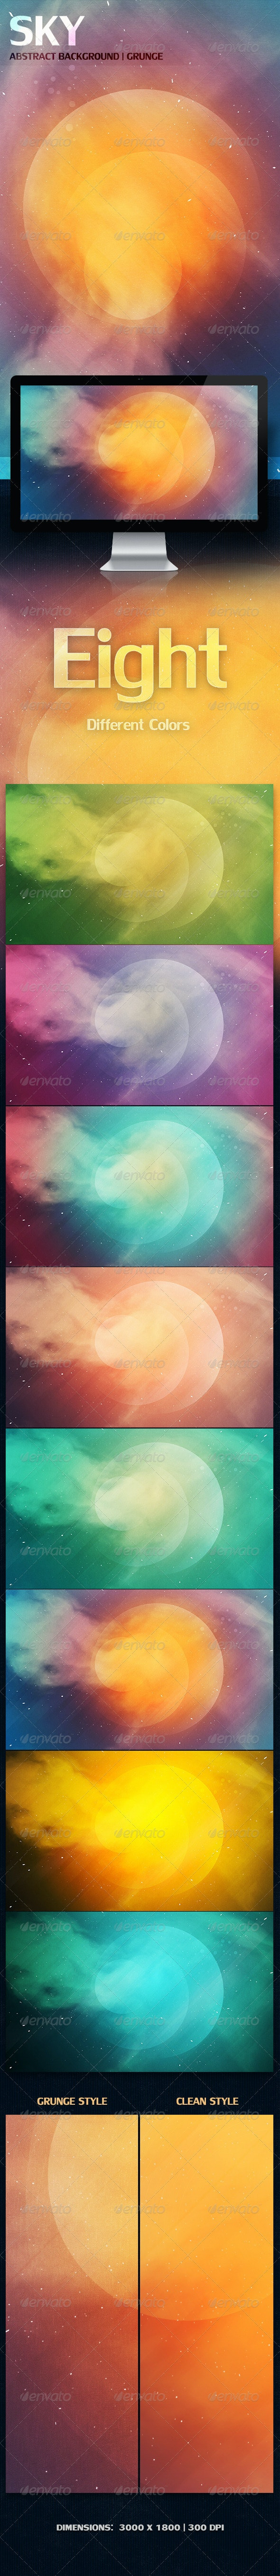 SKY Abstract Background | Grunge - Abstract Backgrounds